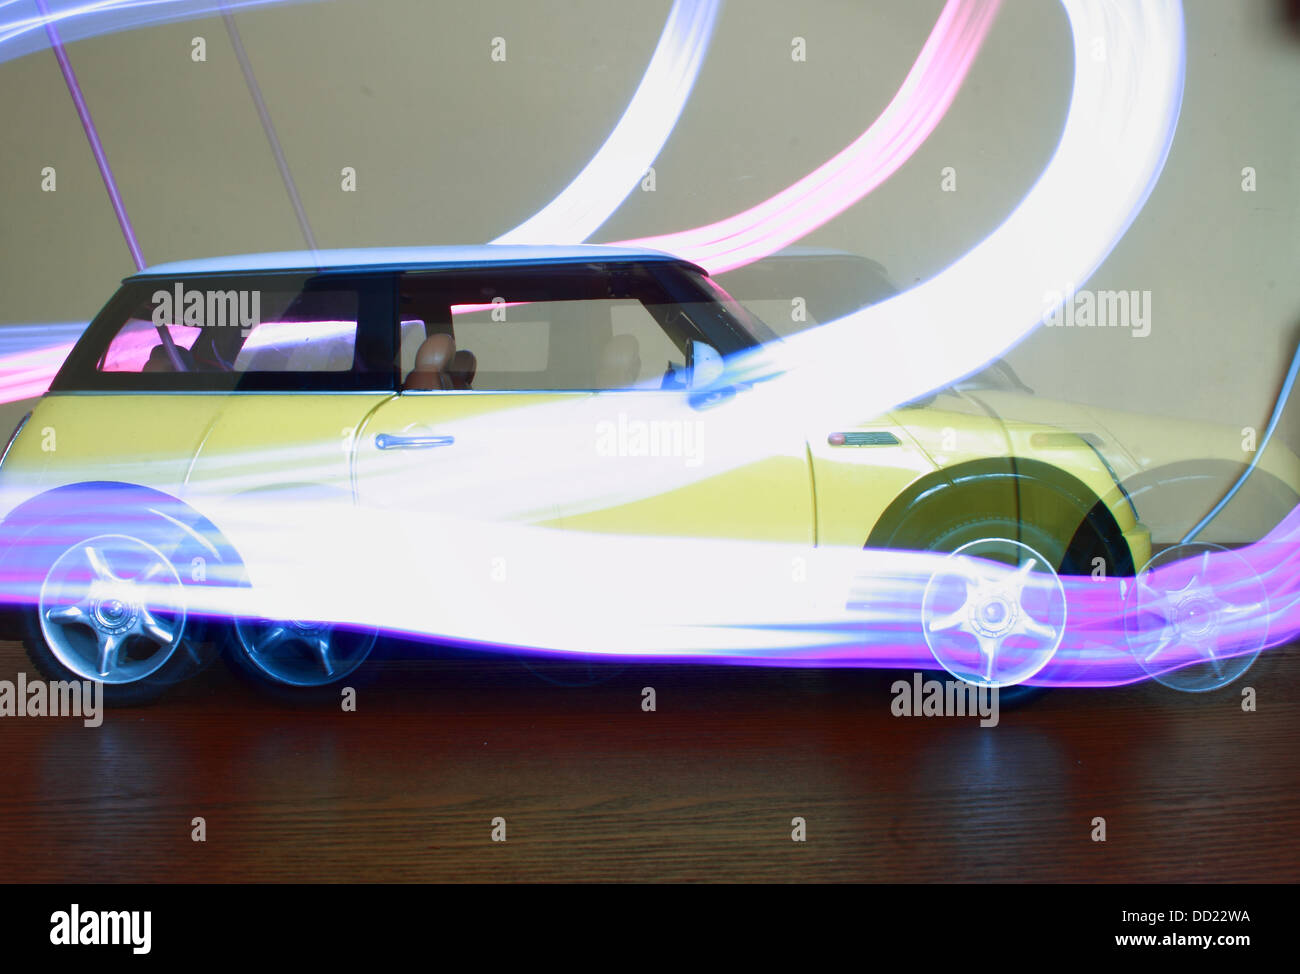 A toy car moving forward with motion lines using a torch - Stock Image